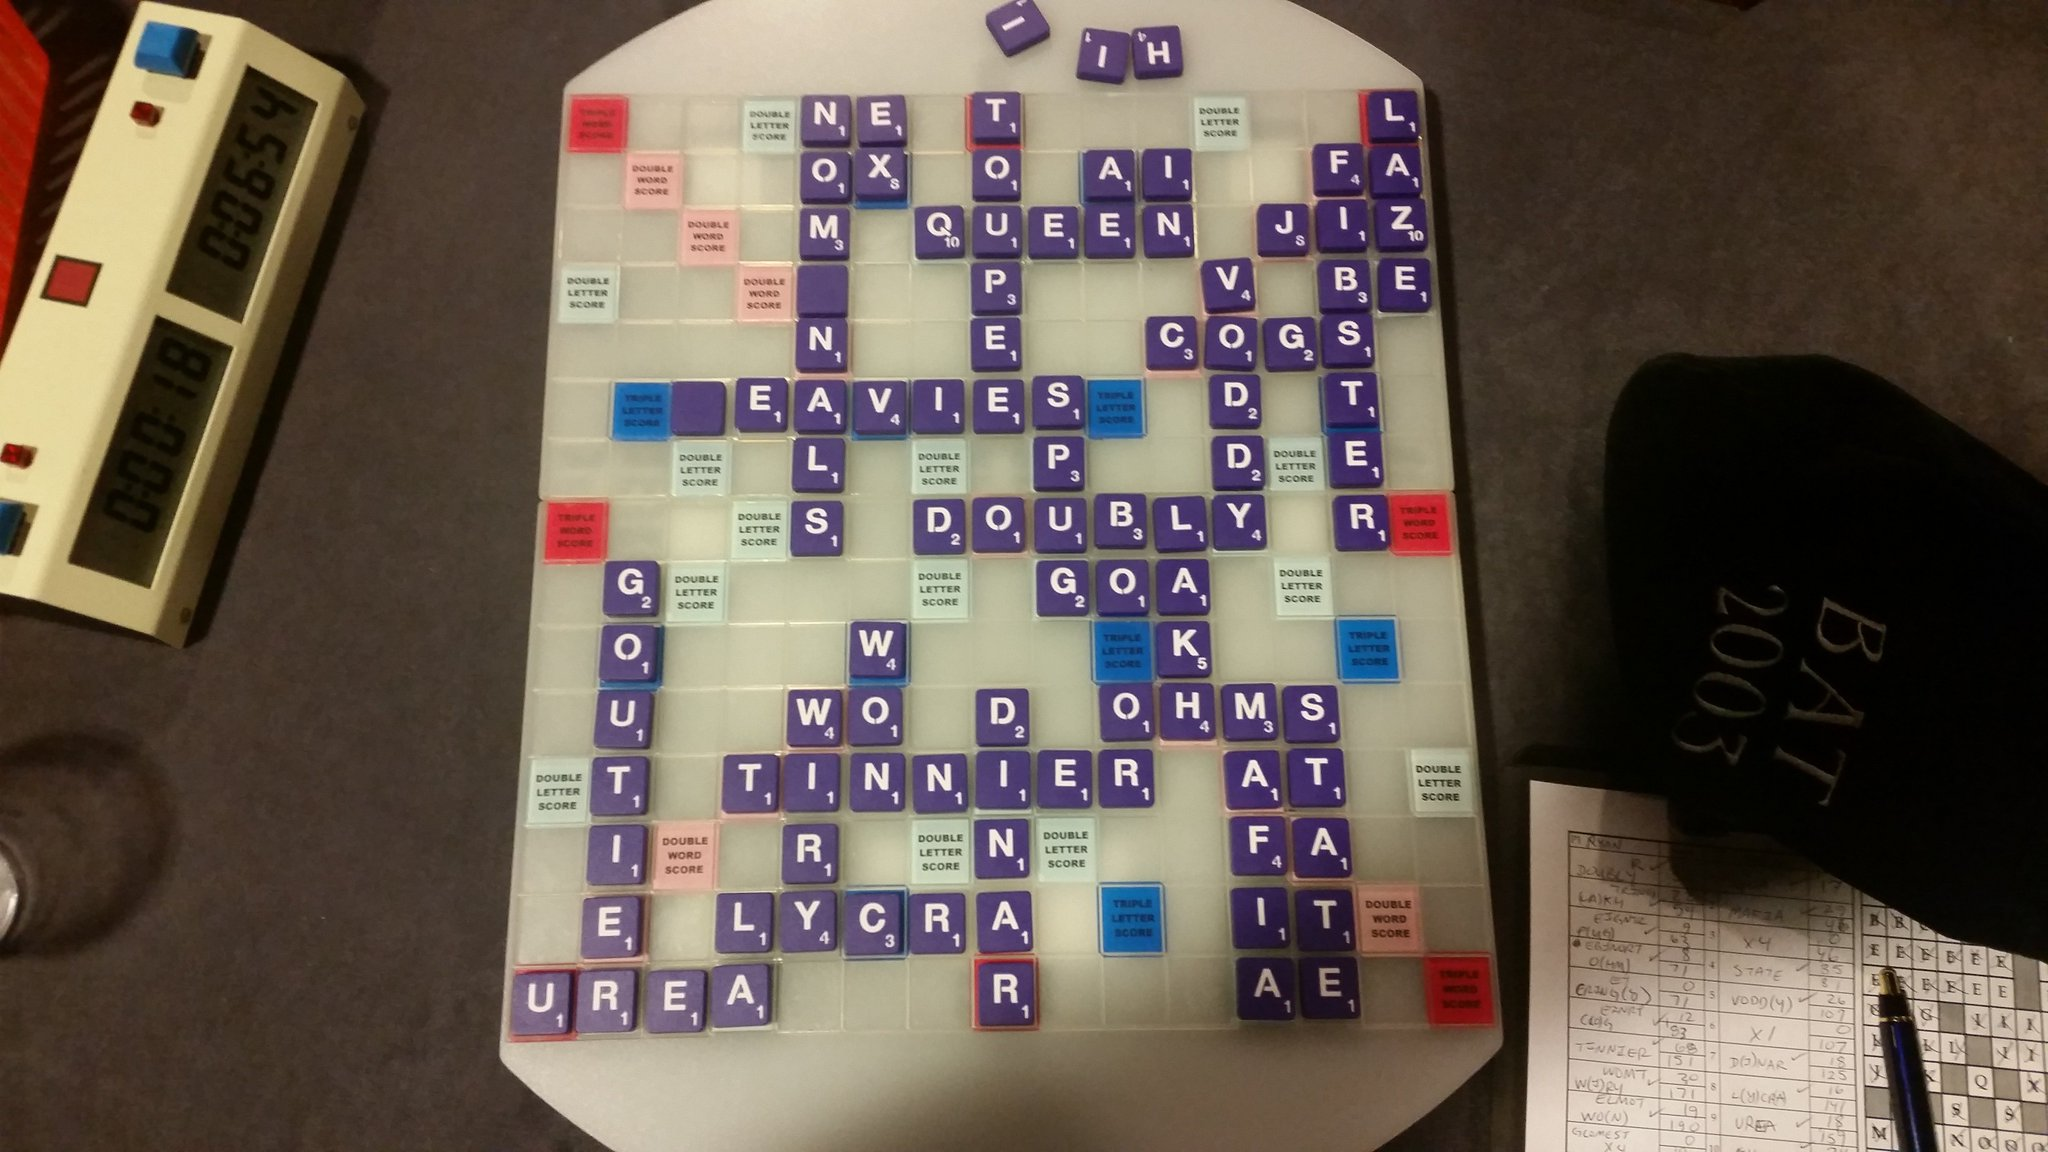 Lost a heartbreaker to Broesma.  Led most of the way, then he draws both blanks and x bomb late to win by 9.  #scrabble #nasc2017 https://t.co/CGSGy9G7jC